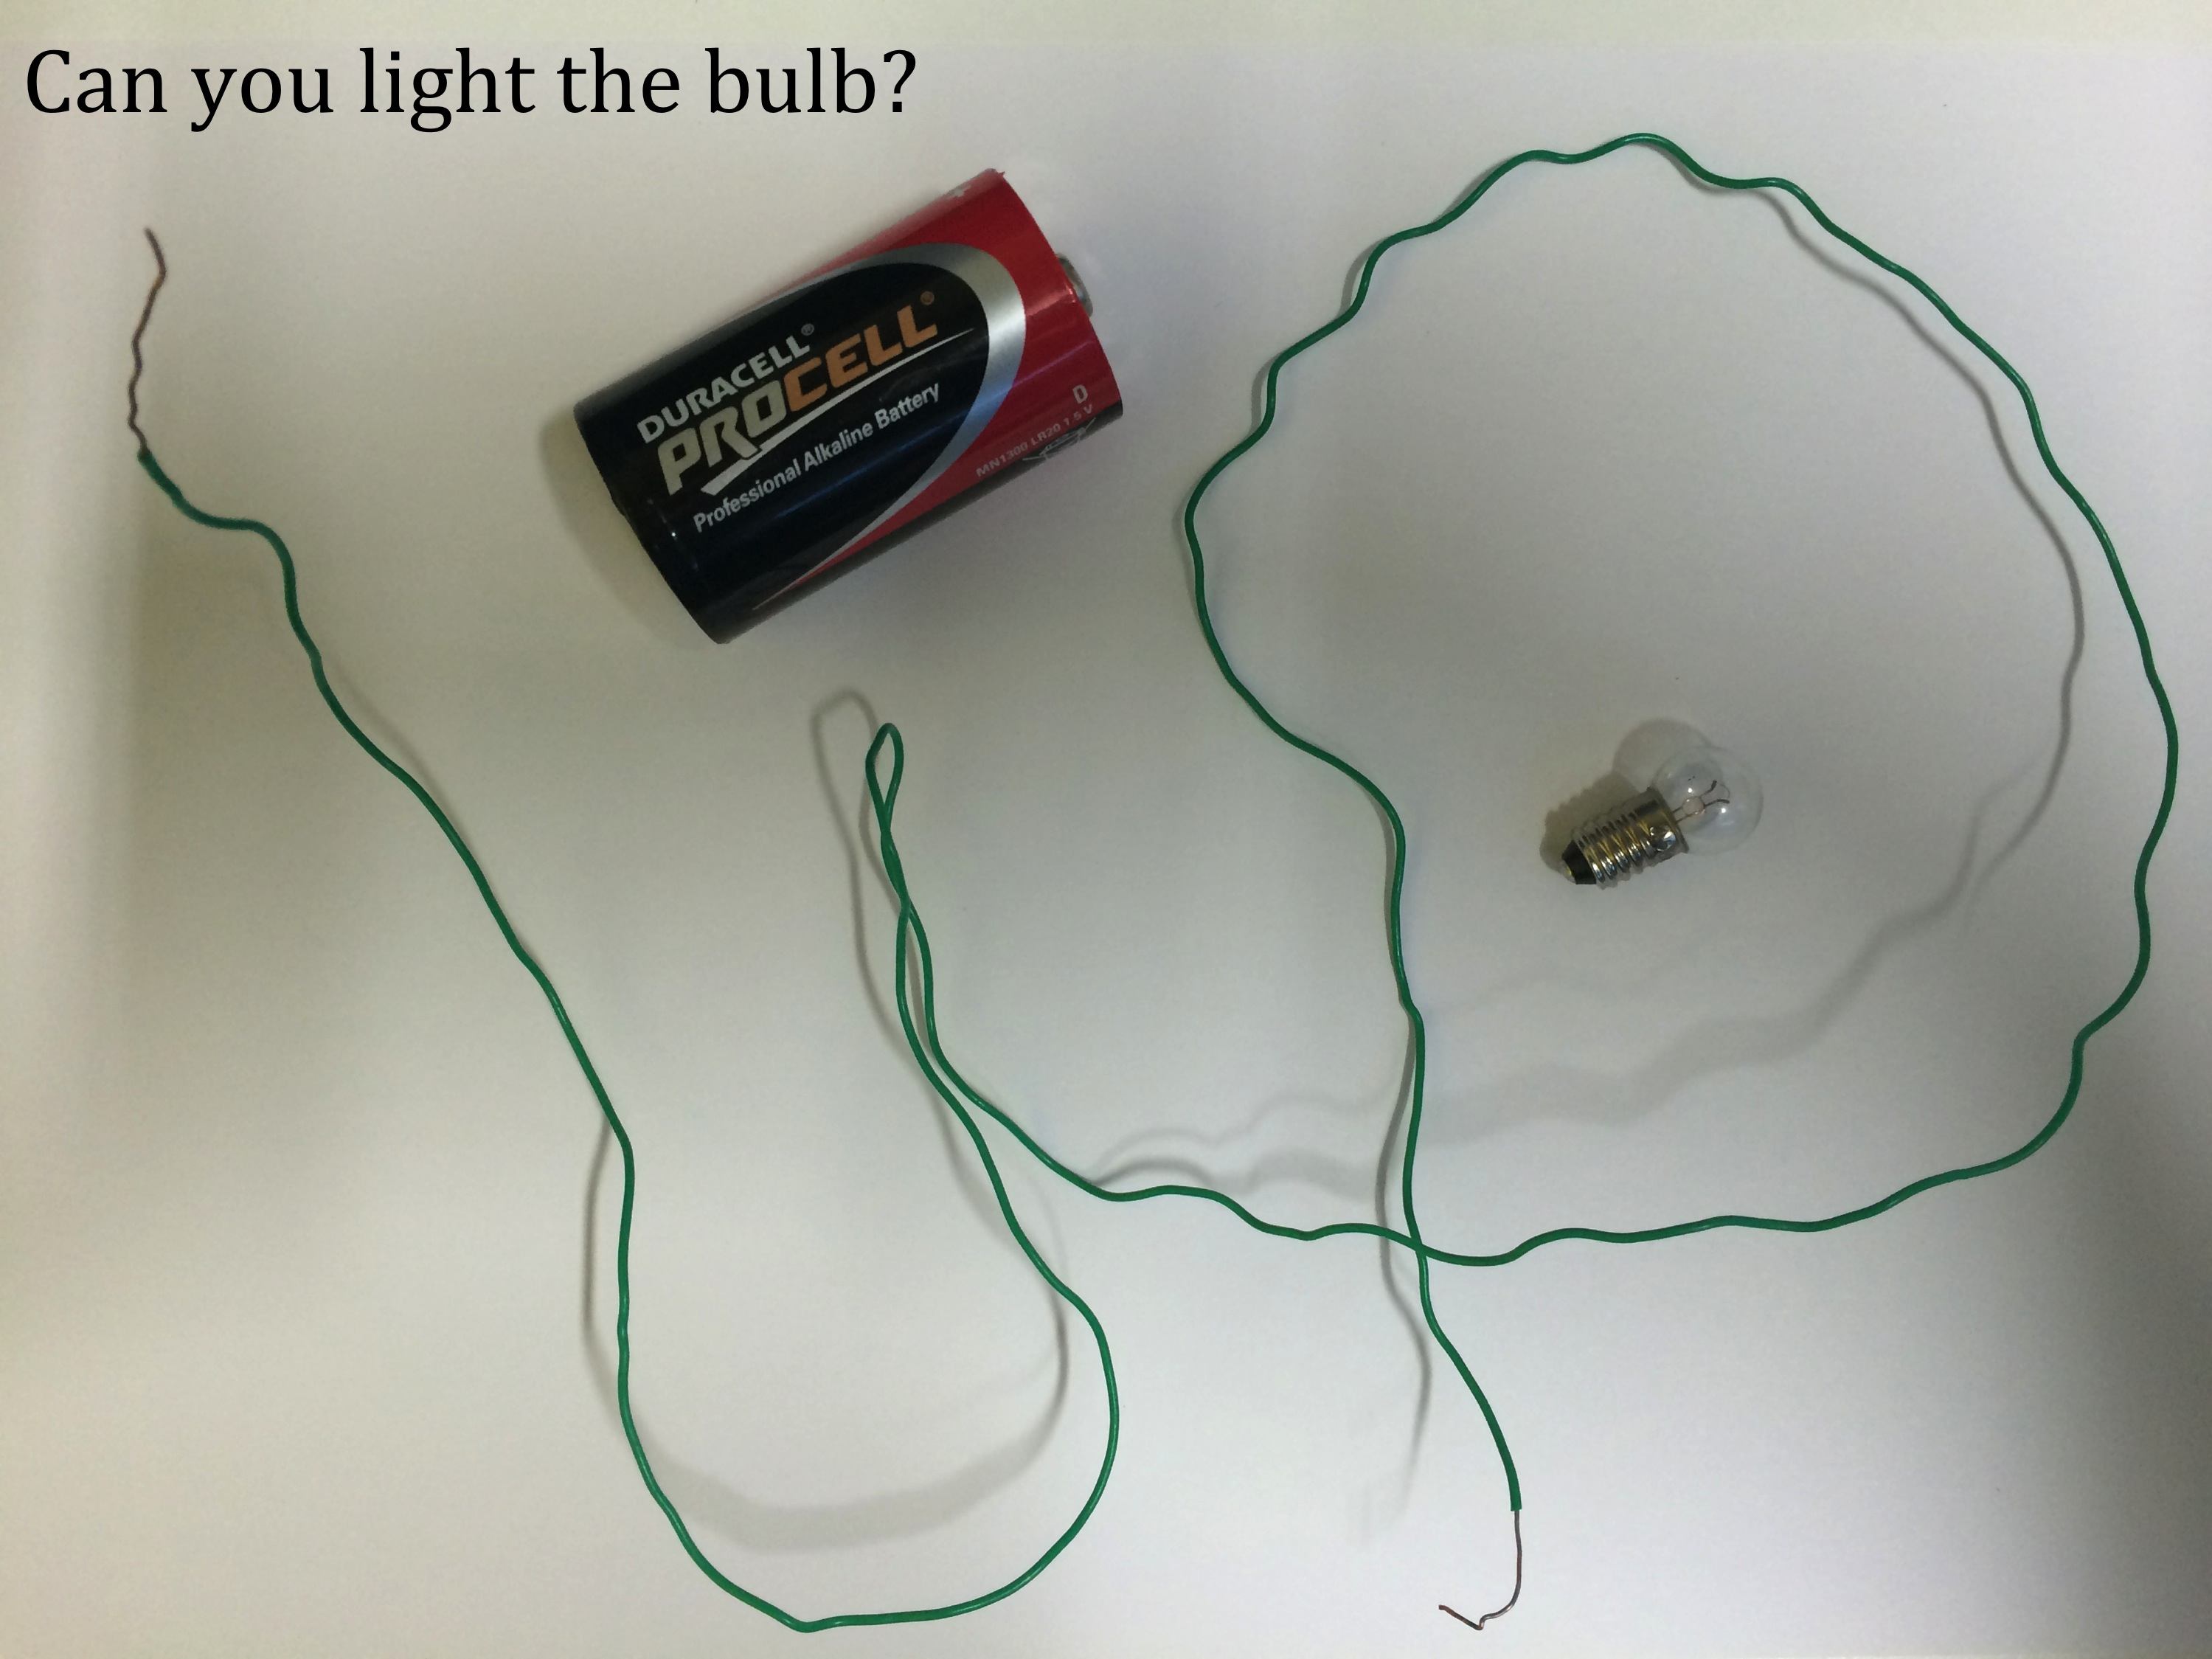 Electricity And Electric Circuits Teaching Resources The Science Lessons Exercises Practice Tests Ask Students To Light A Bulb Using Only Wire Battery This Simple Activity Often Challenges Many Think It Is Impossible Do With